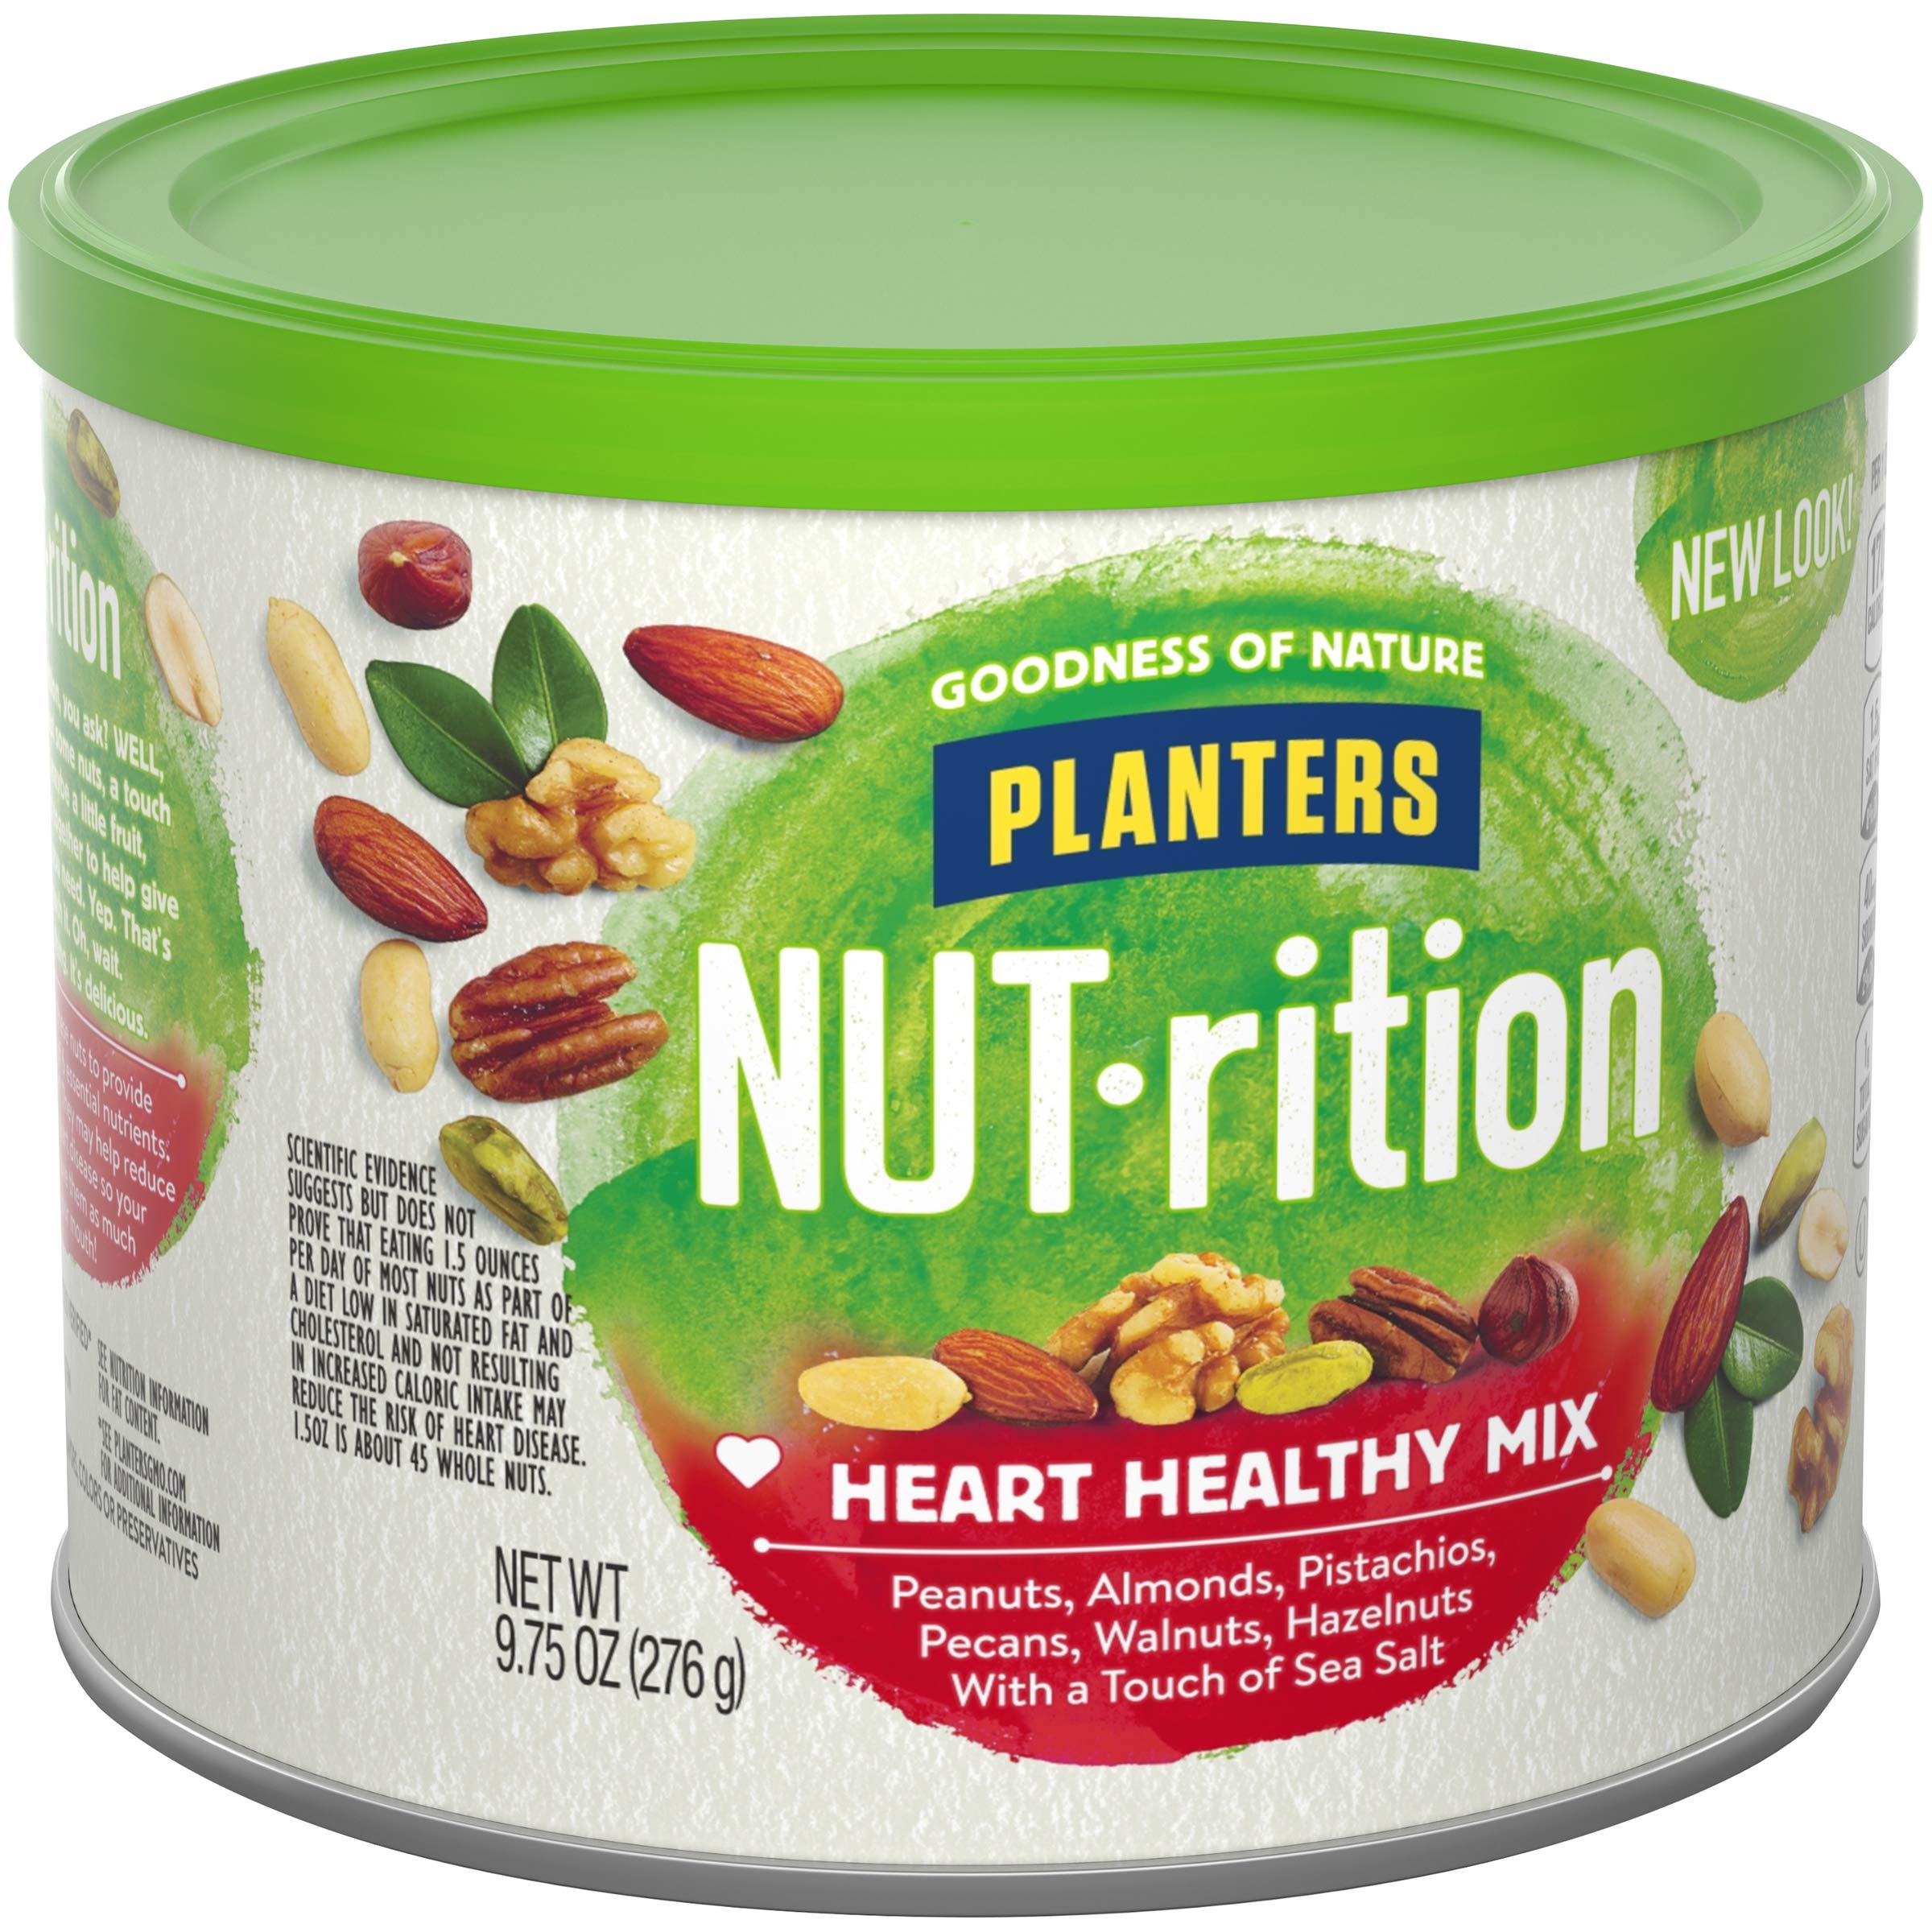 NUTrition Heart Healthy Snack Nut Mix (9.75oz, Pack of 3) by Planters (Image #7)